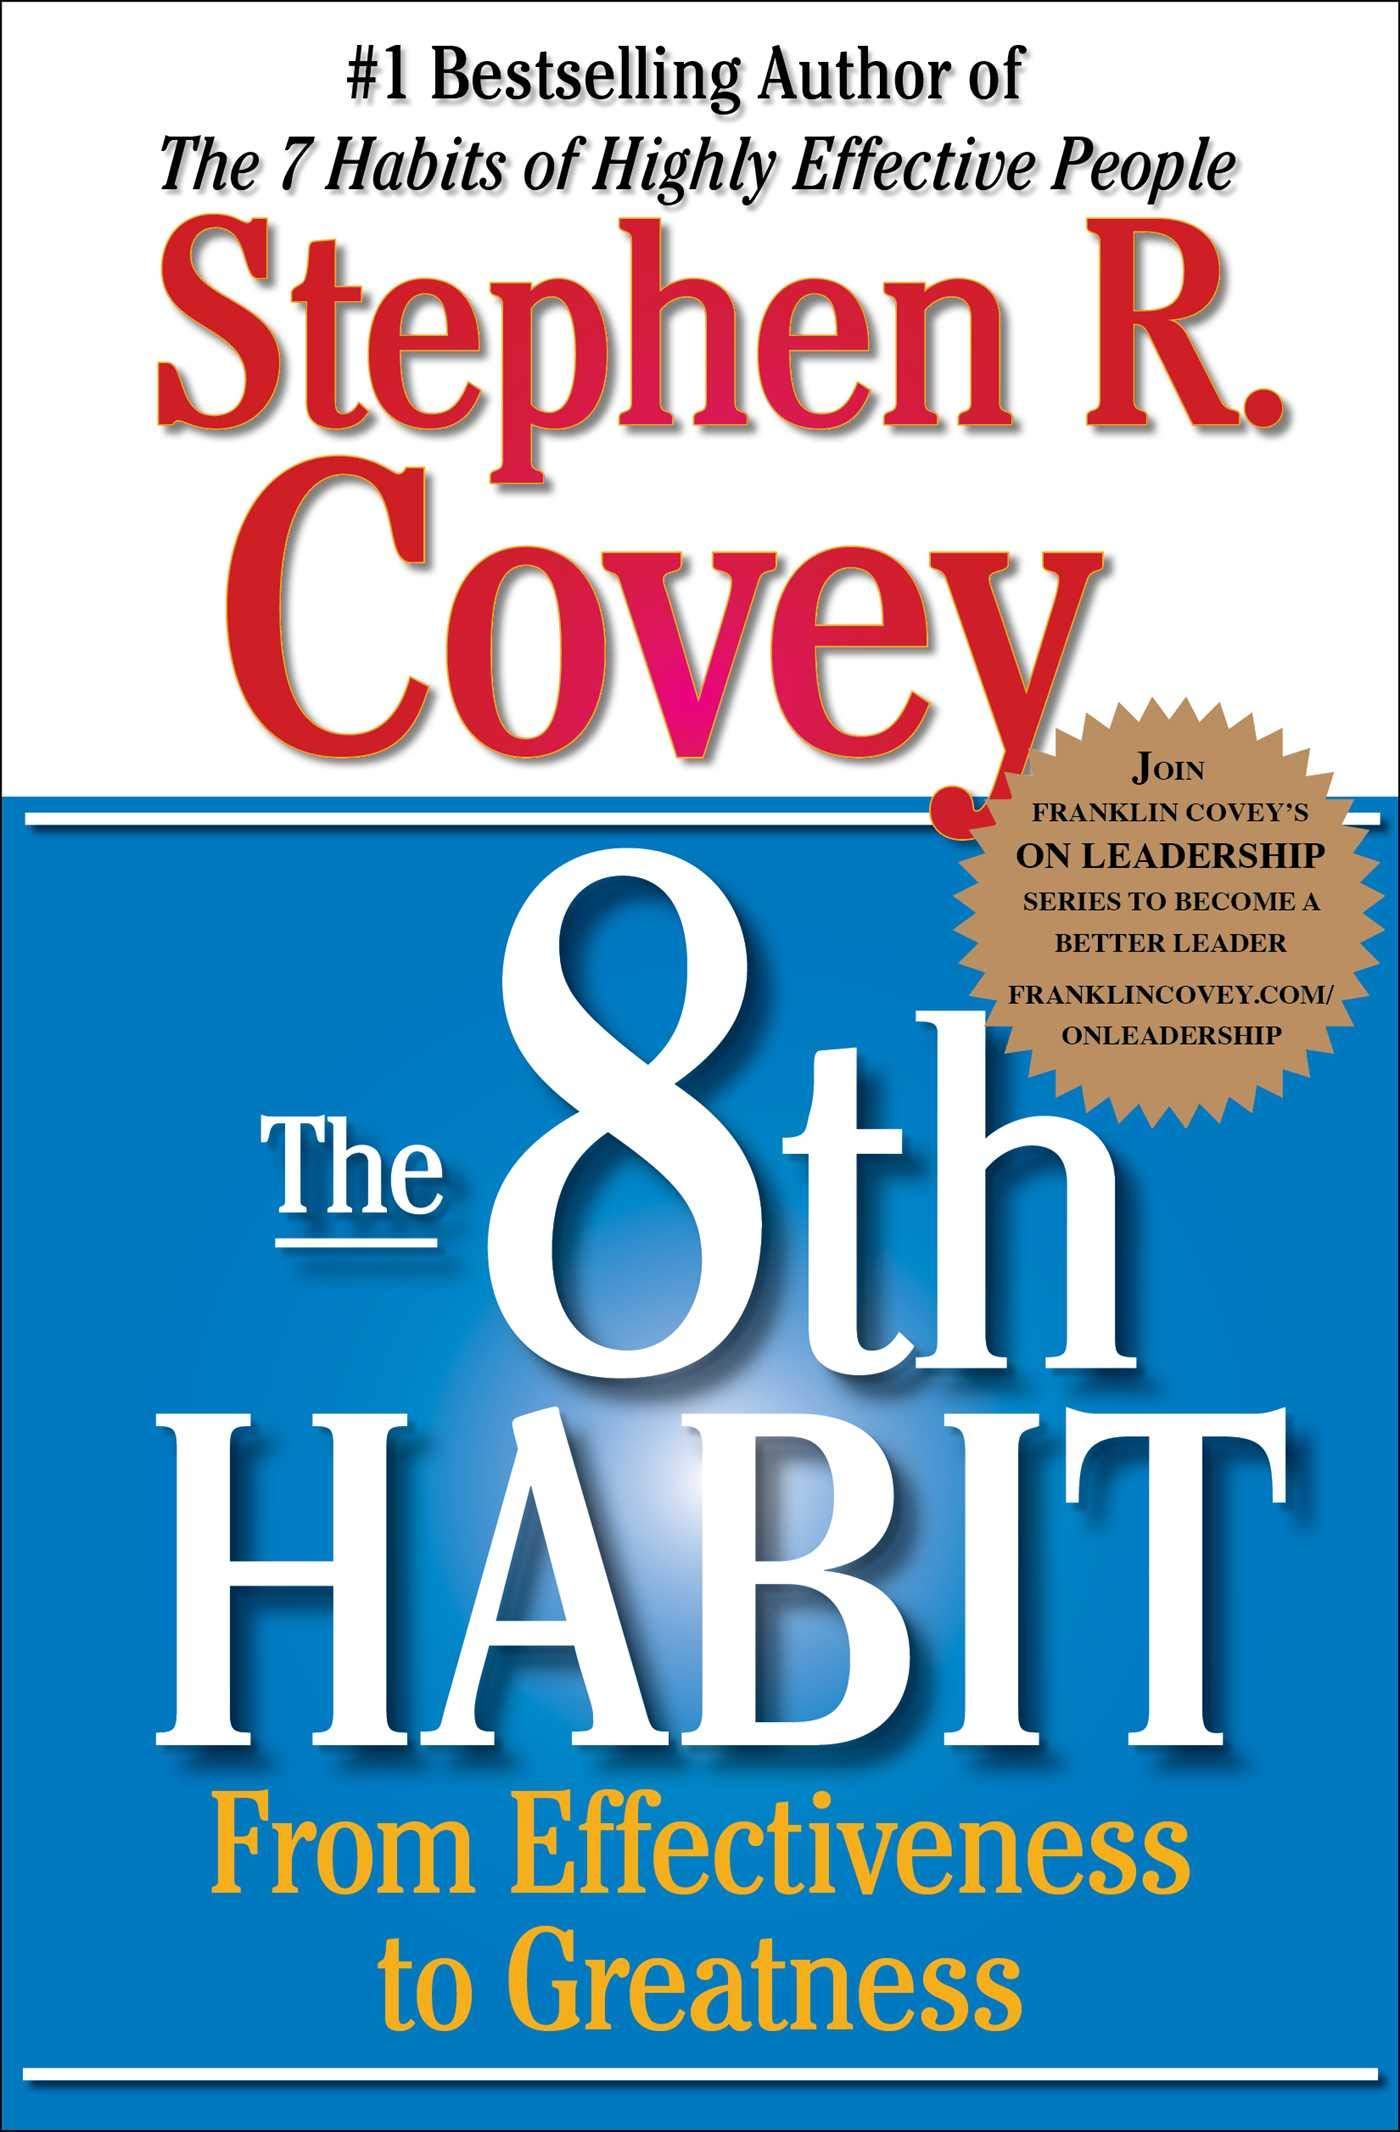 The 8th Habit: From Effectiveness to Greatness: Covey, Stephen R.:  9780743287937: Amazon.com: Books